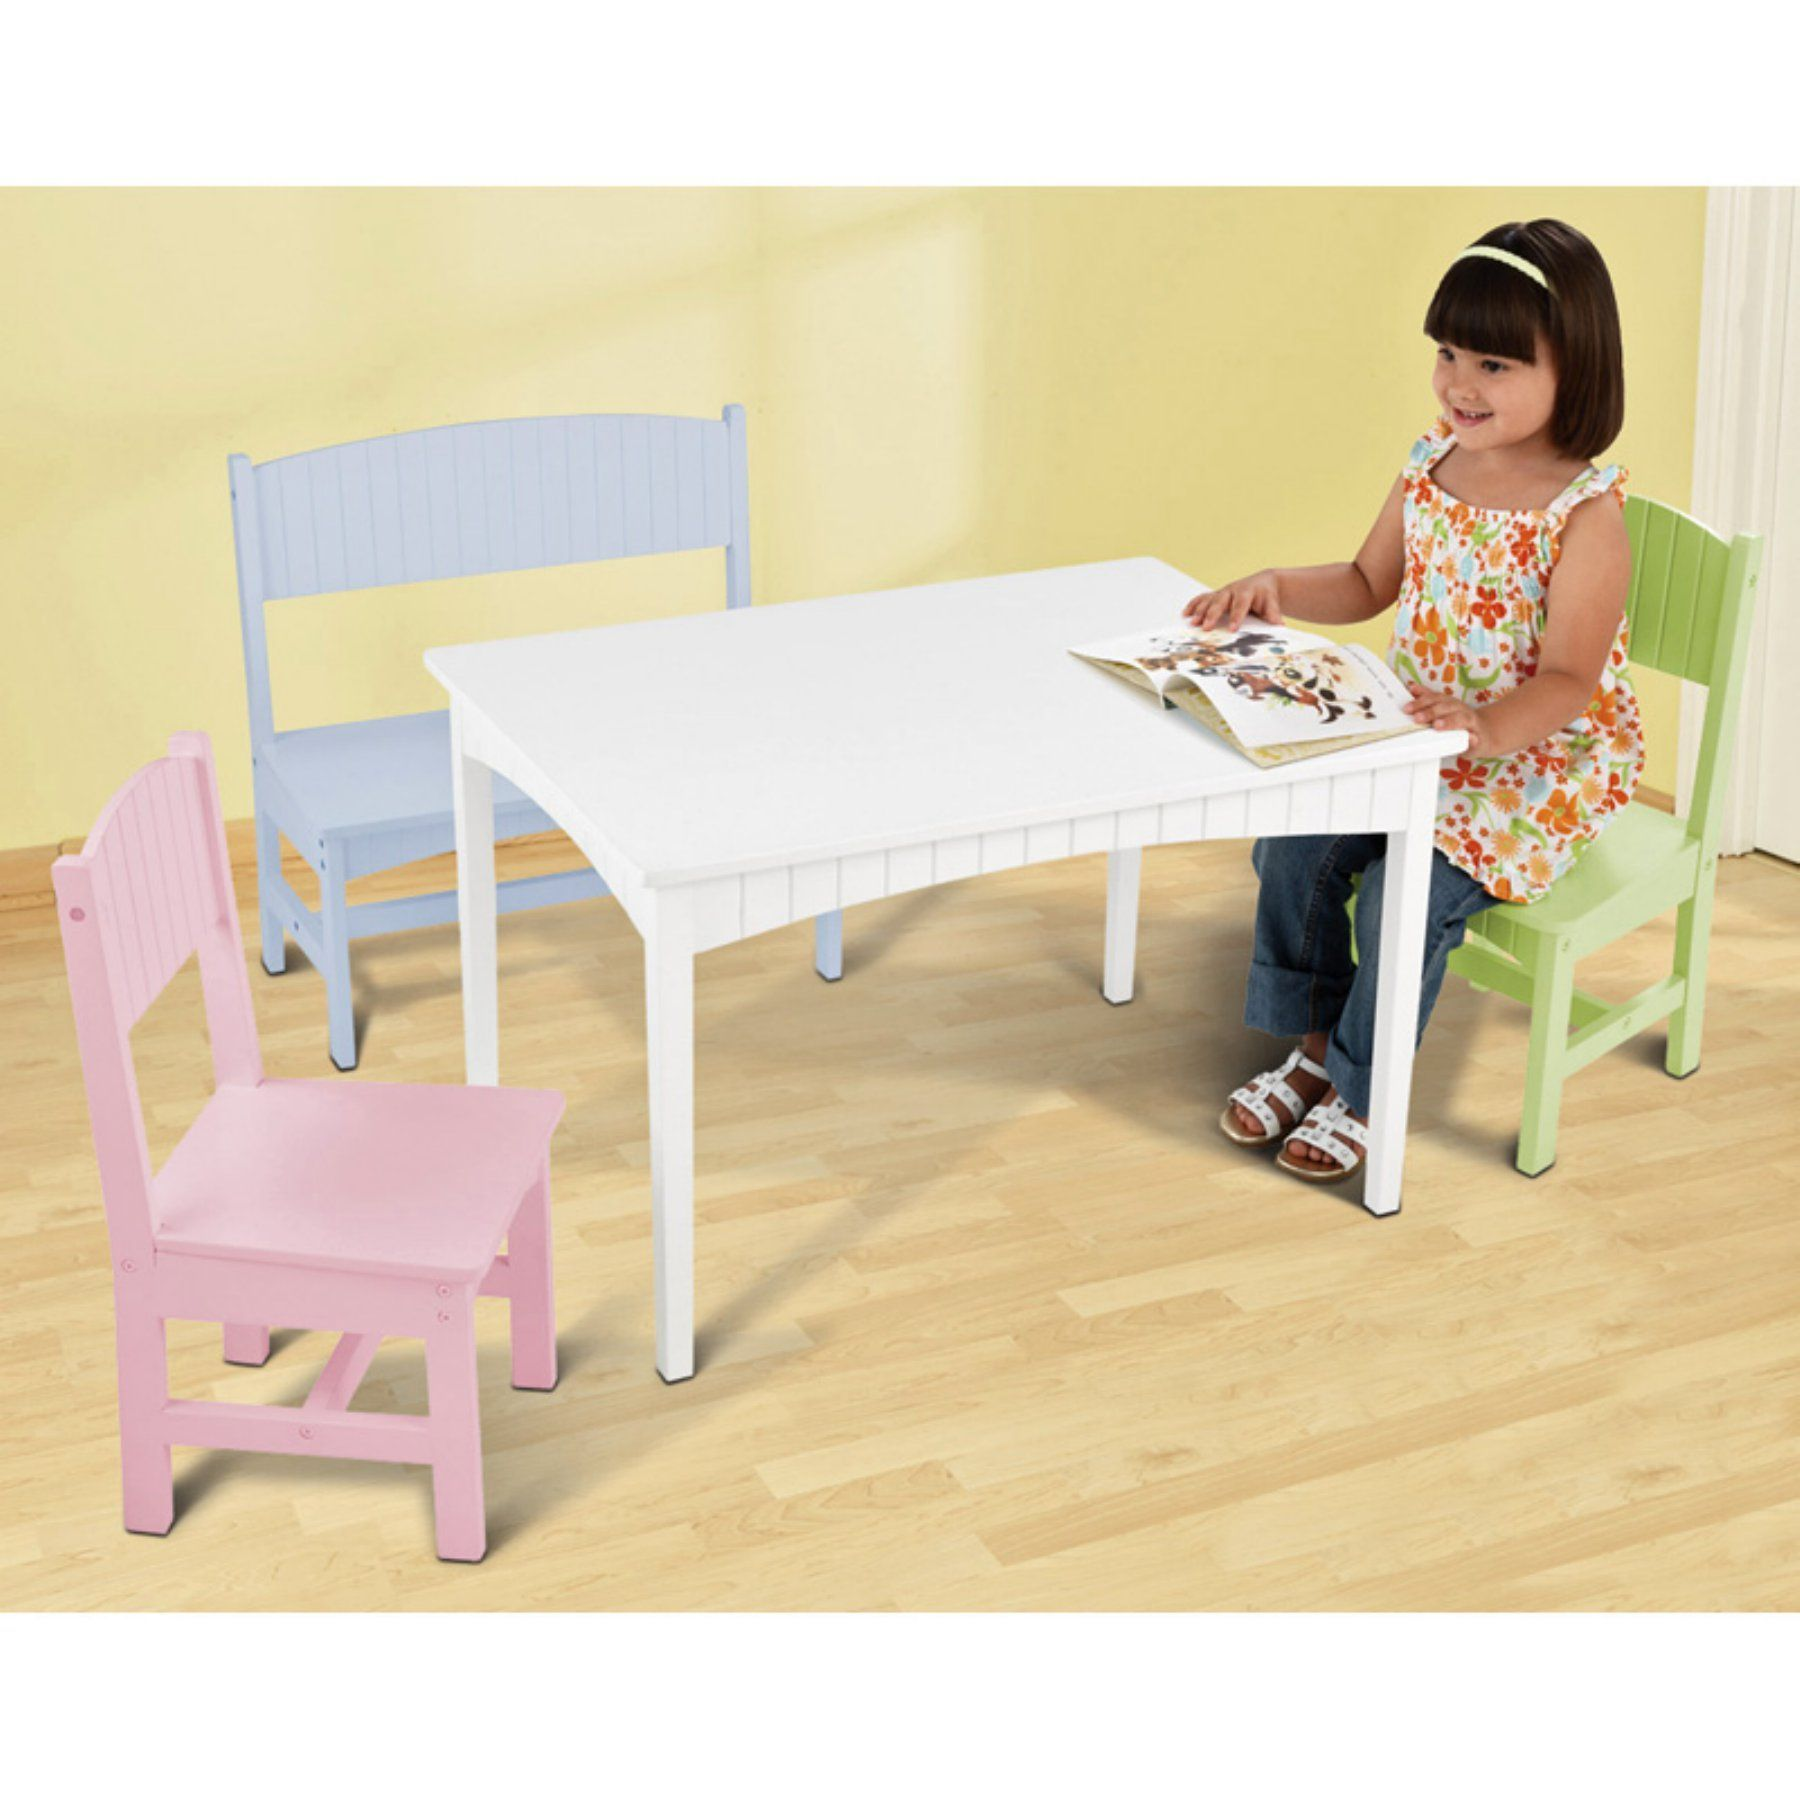 Awe Inspiring Kidkraft Nantucket Table With Bench And 2 Chairs Pastel Machost Co Dining Chair Design Ideas Machostcouk